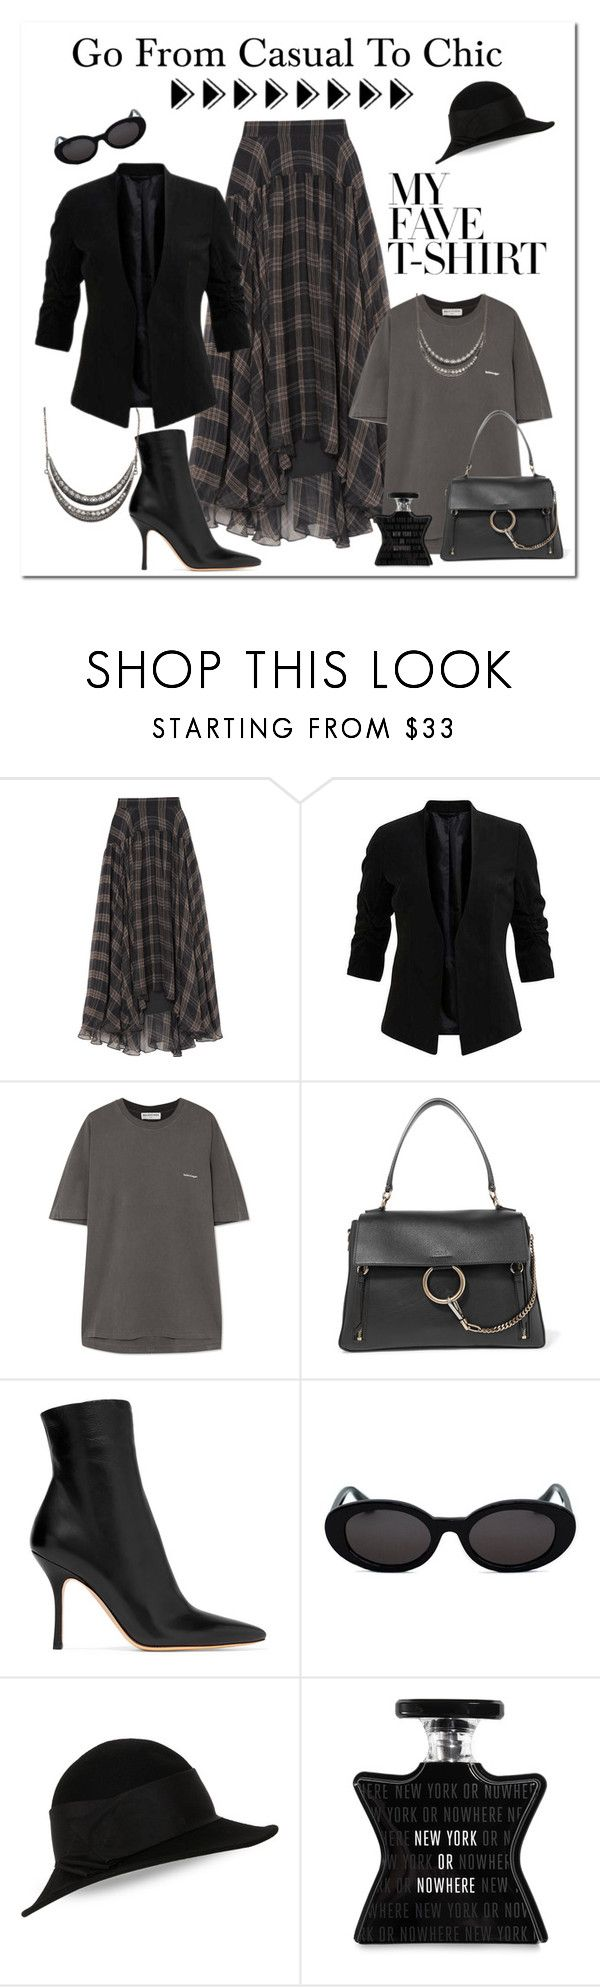 """""""Dress Up a T-Shirt"""" by victorianheaven ❤ liked on Polyvore featuring Brunello Cucinelli, Balenciaga, The Row, Kathy Jeanne, Bond No. 9 and MyFaveTshirt"""